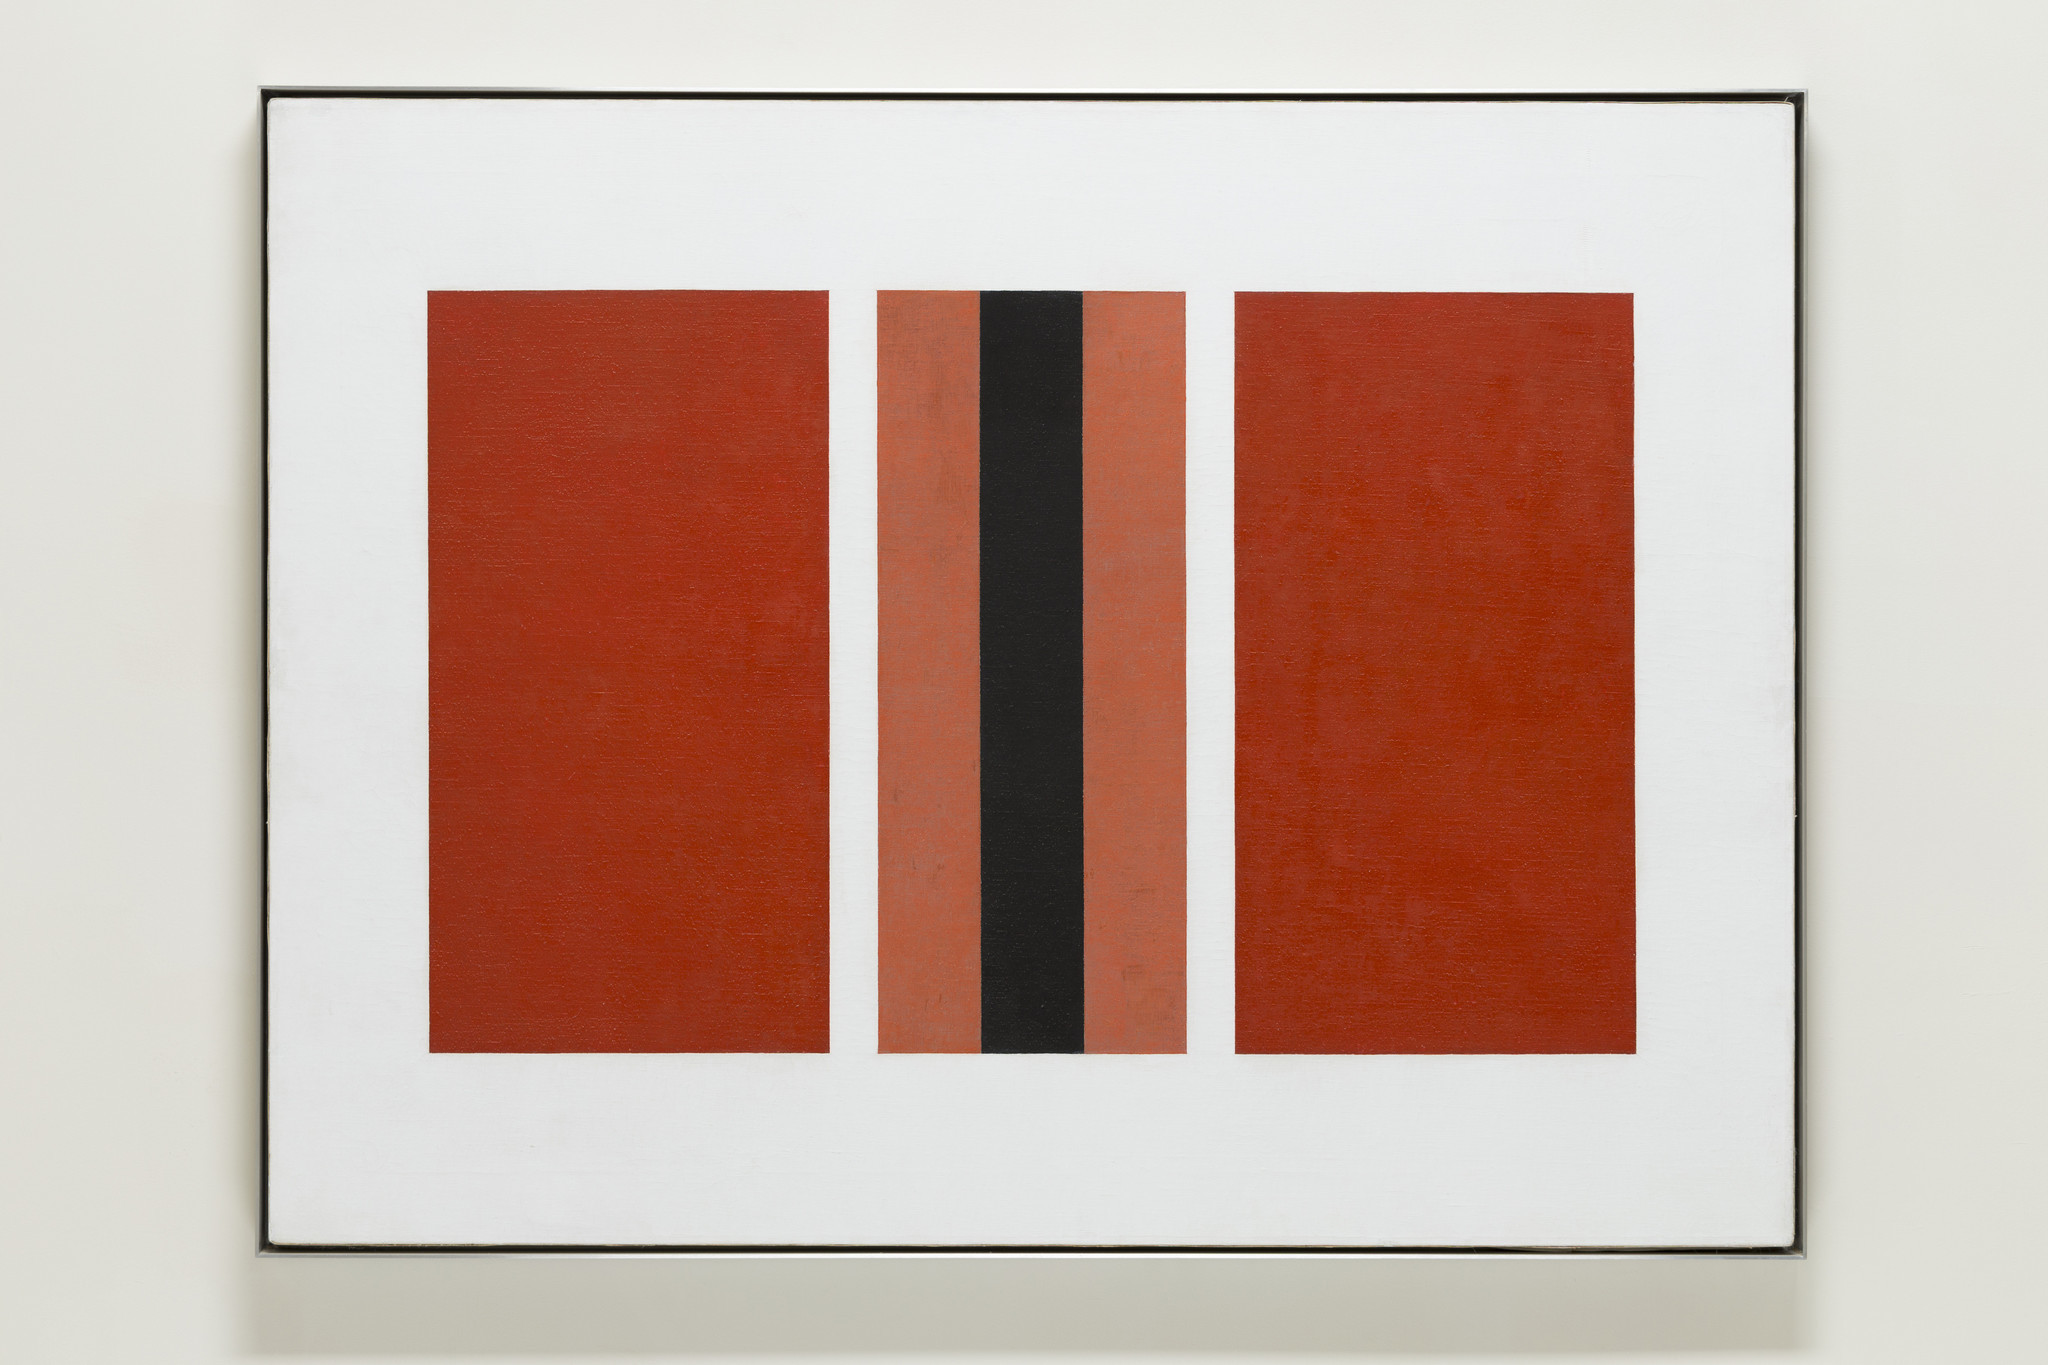 """John McLaughlin's """"#29-1960,"""" 1960, oil on canvas, 36 inches by 48 inches,"""